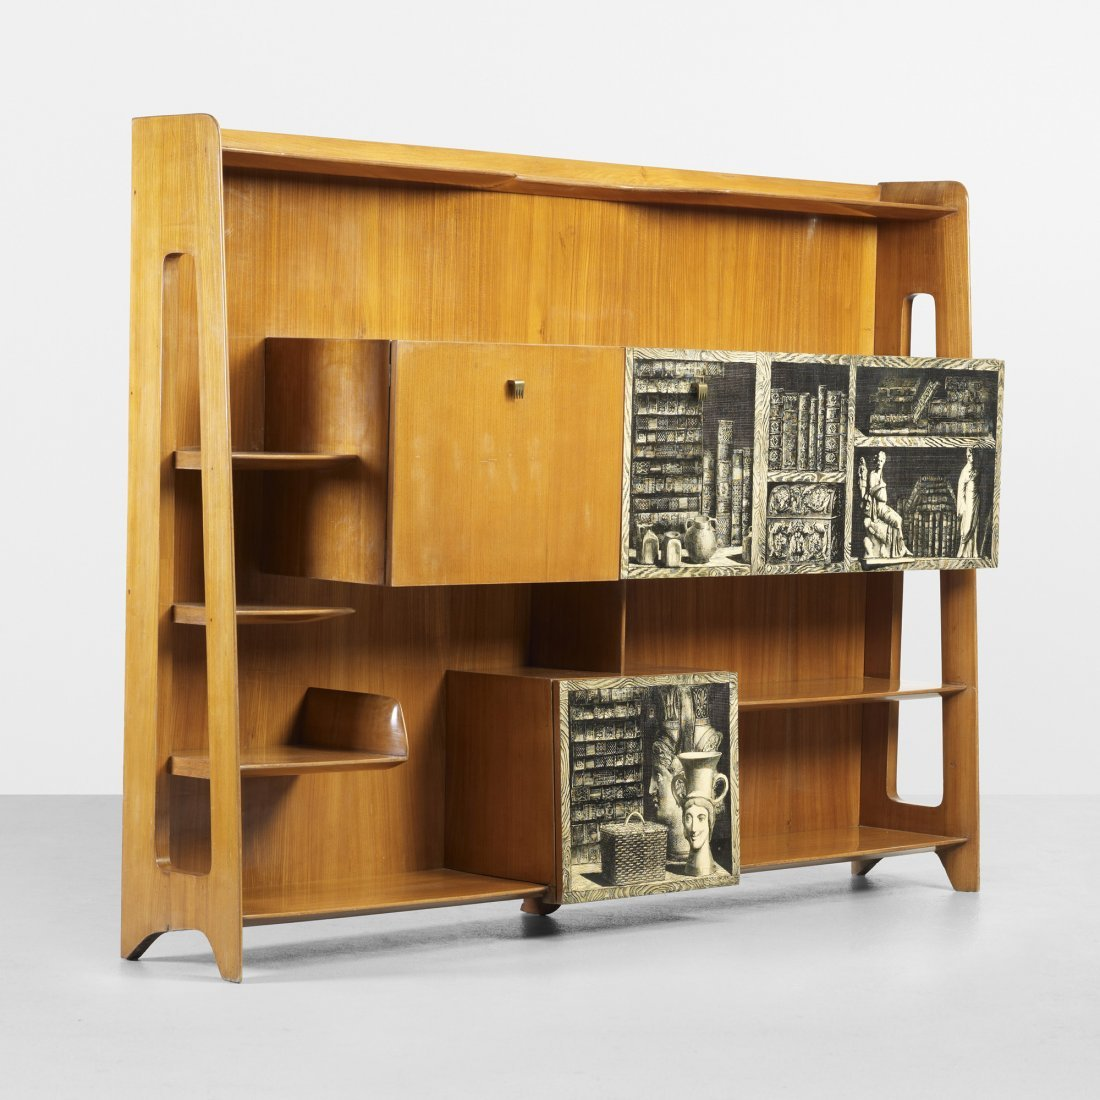 114: Gio Ponti and Piero Fornasetti Important bookcase